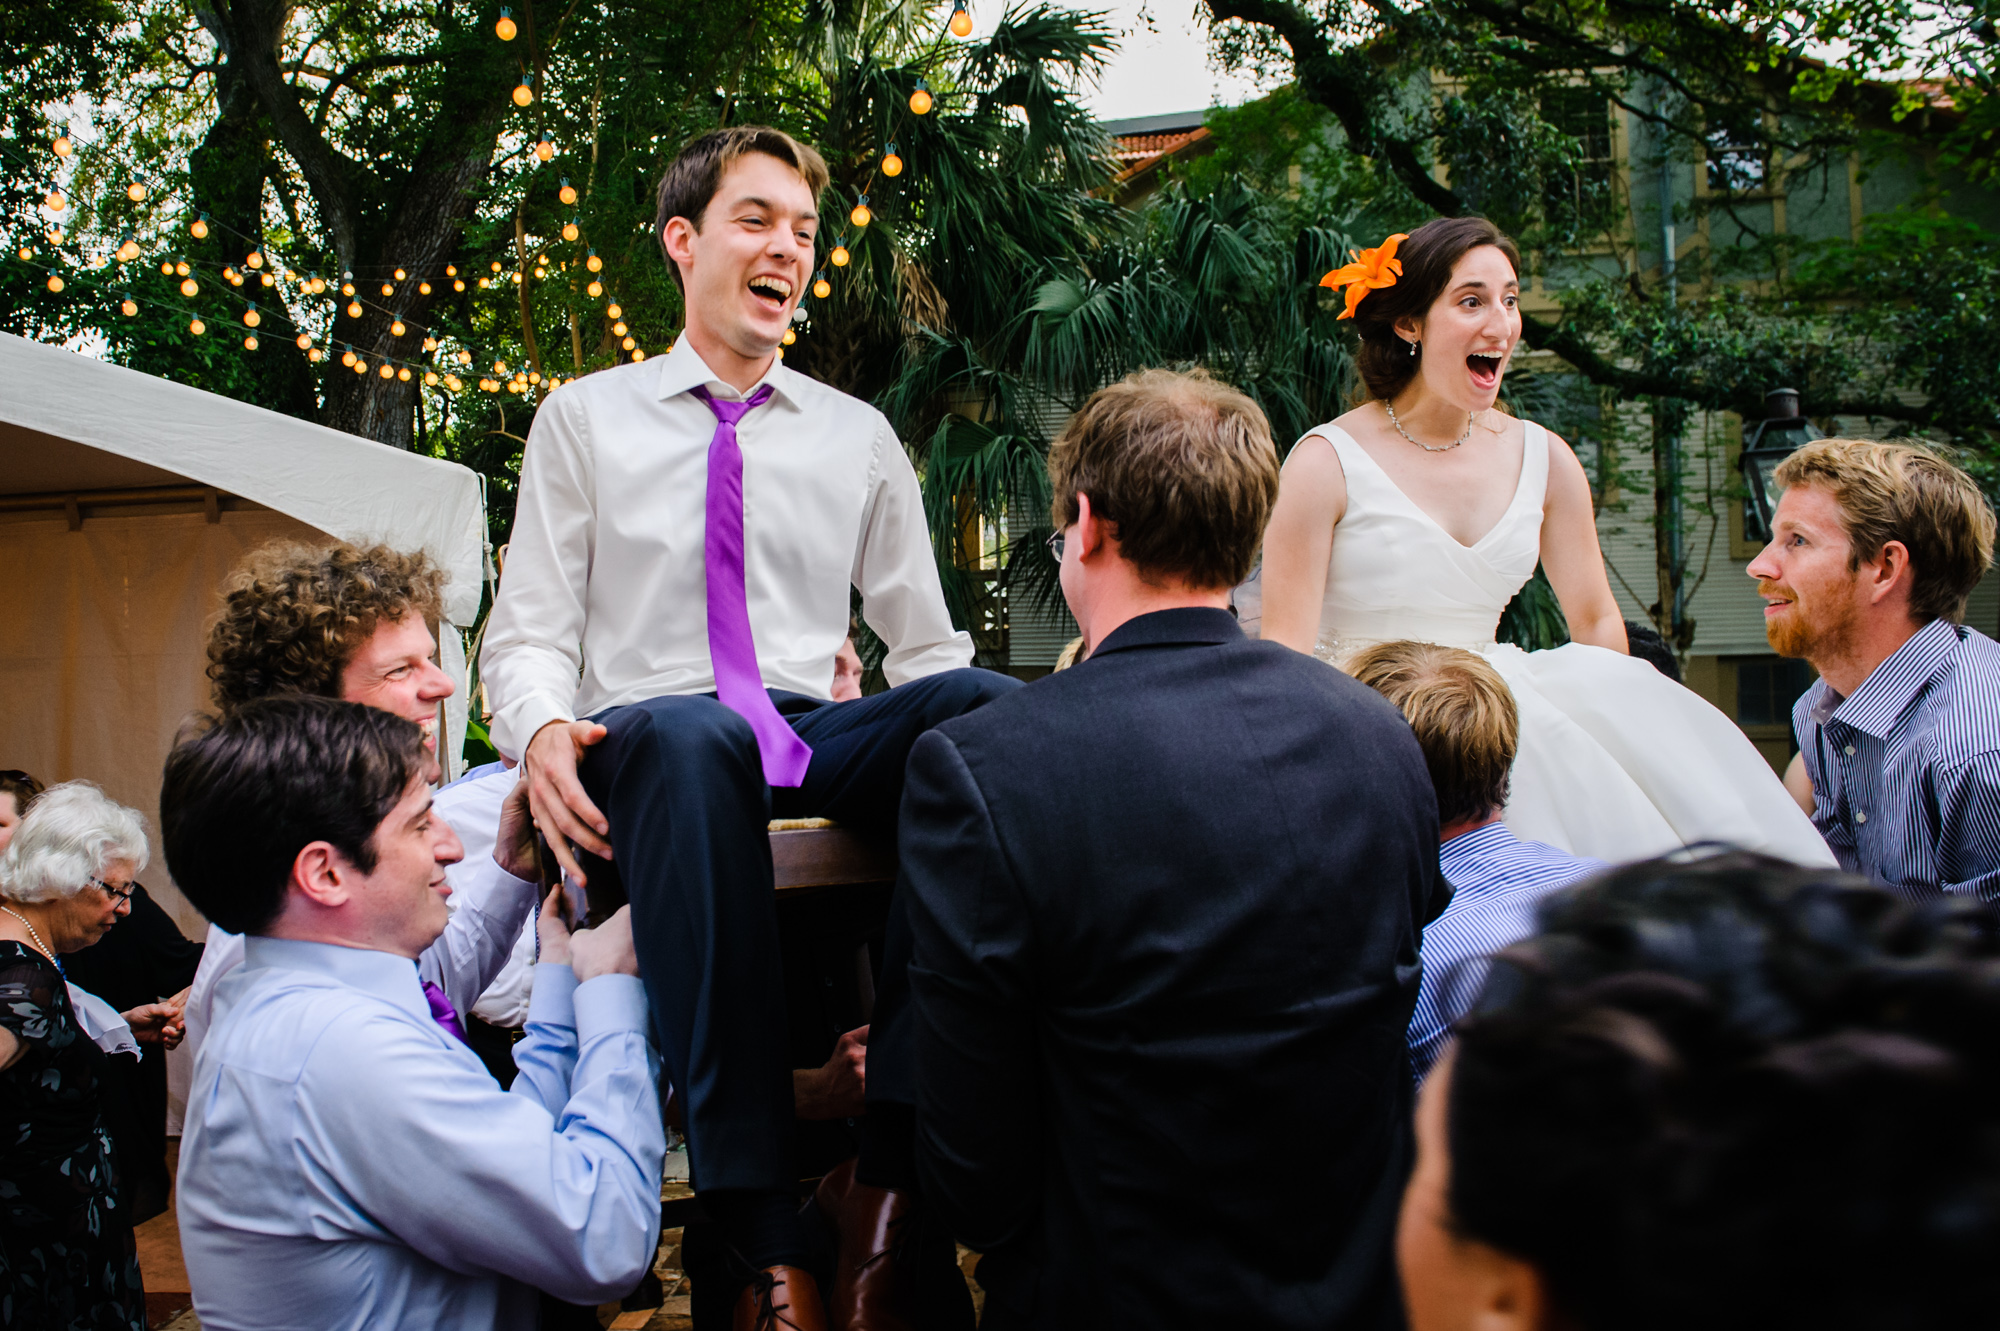 Bride and groom being lifted in chairs as part of the Jewish wedding tradition, Degas House, New Orleans